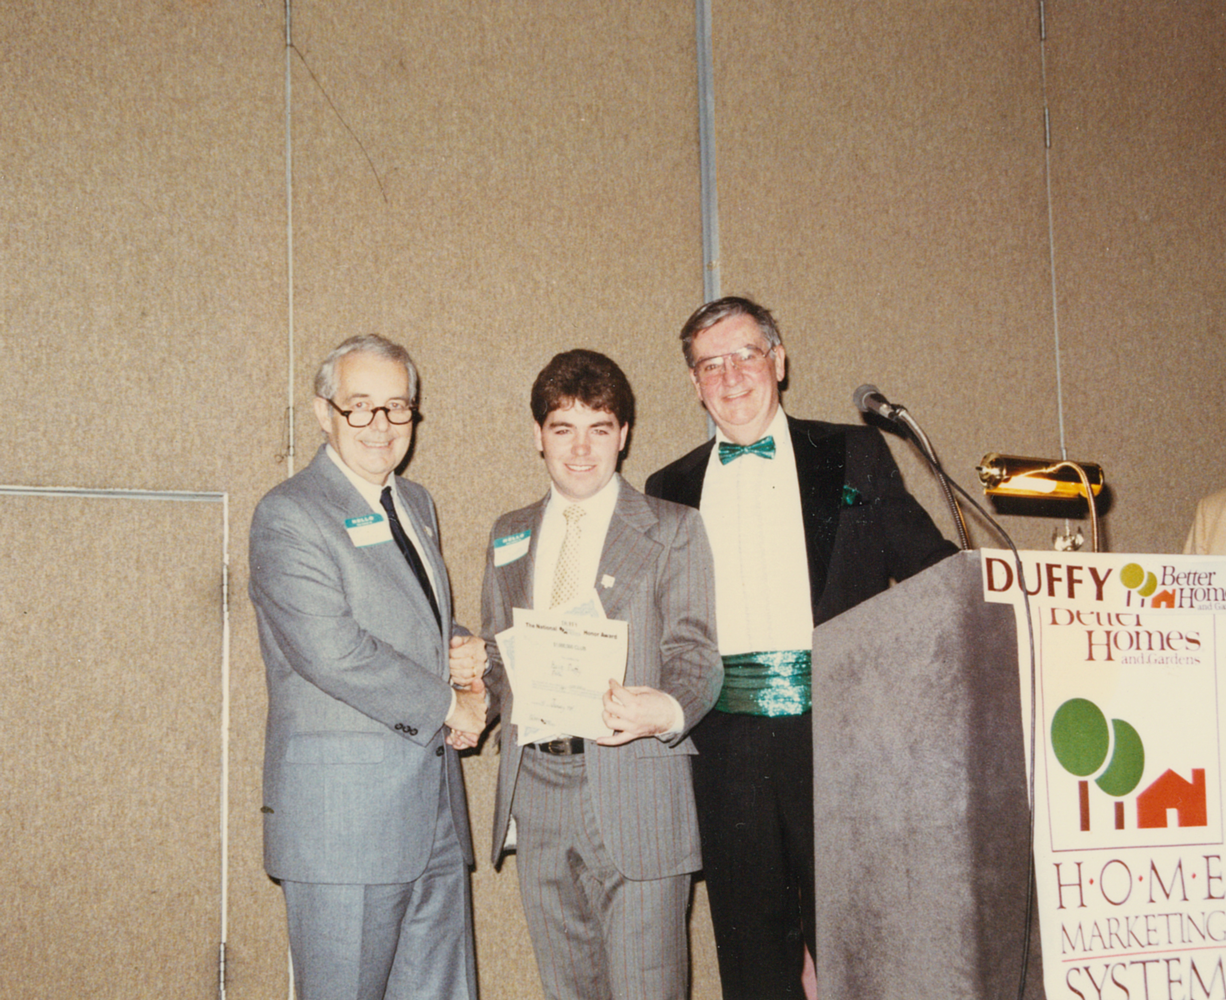 Accepting award - Duffy Better Home and Gardens